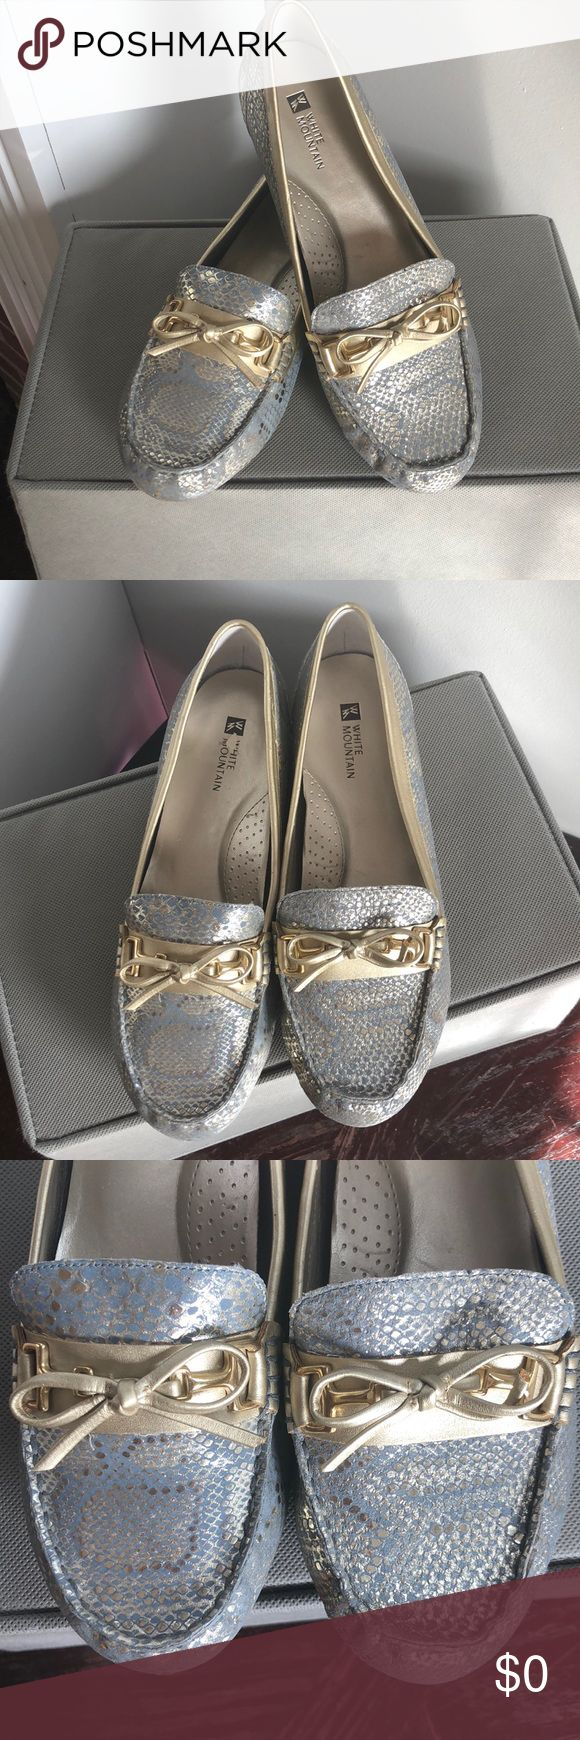 White Mountain Size 9 Gold & Blue Loafer Flats White Mountain size 9 snake print loafers in gold and a gorgeous baby blue / pewter color!  Very minimal wear on inside these flats (just from a pesky sticker that would not remove) soles show almost zero signs of wear.  Please feel free to ask any questions and offers are always welcome :) White Mountain Shoes Flats & Loafers